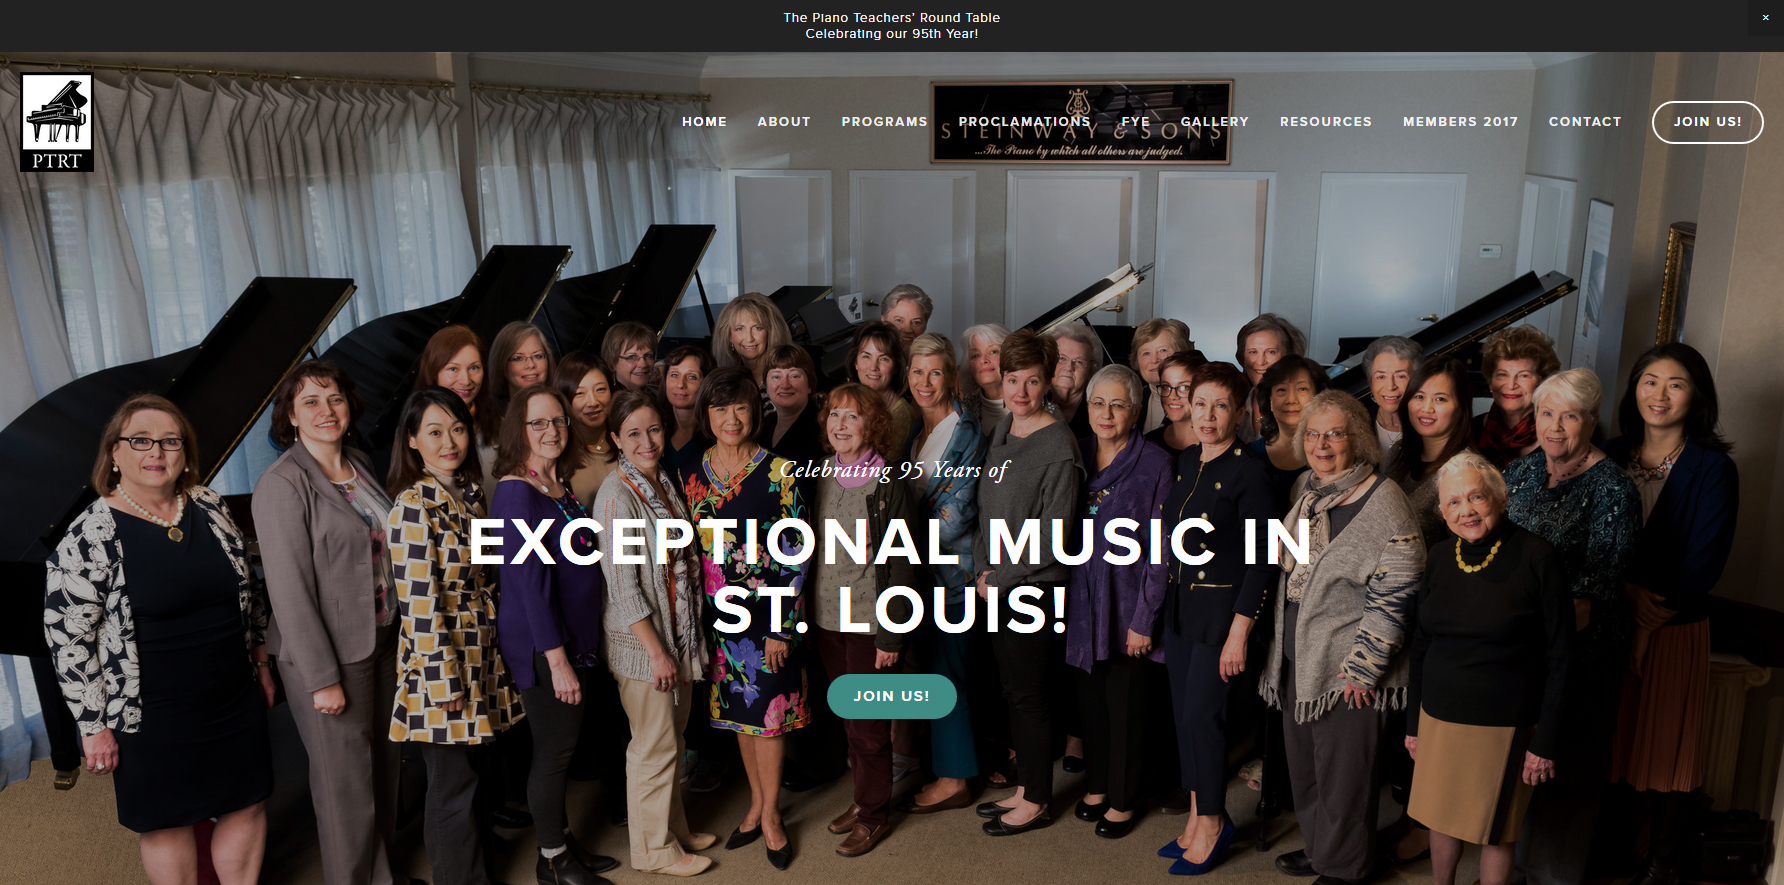 The Piano Teachers' Round Table was established April 5, 1922 by a group of dedicated musicians with a desire to further and enhance the appreciation of good music in the St. Louis area. PTRT meets monthly September through May.